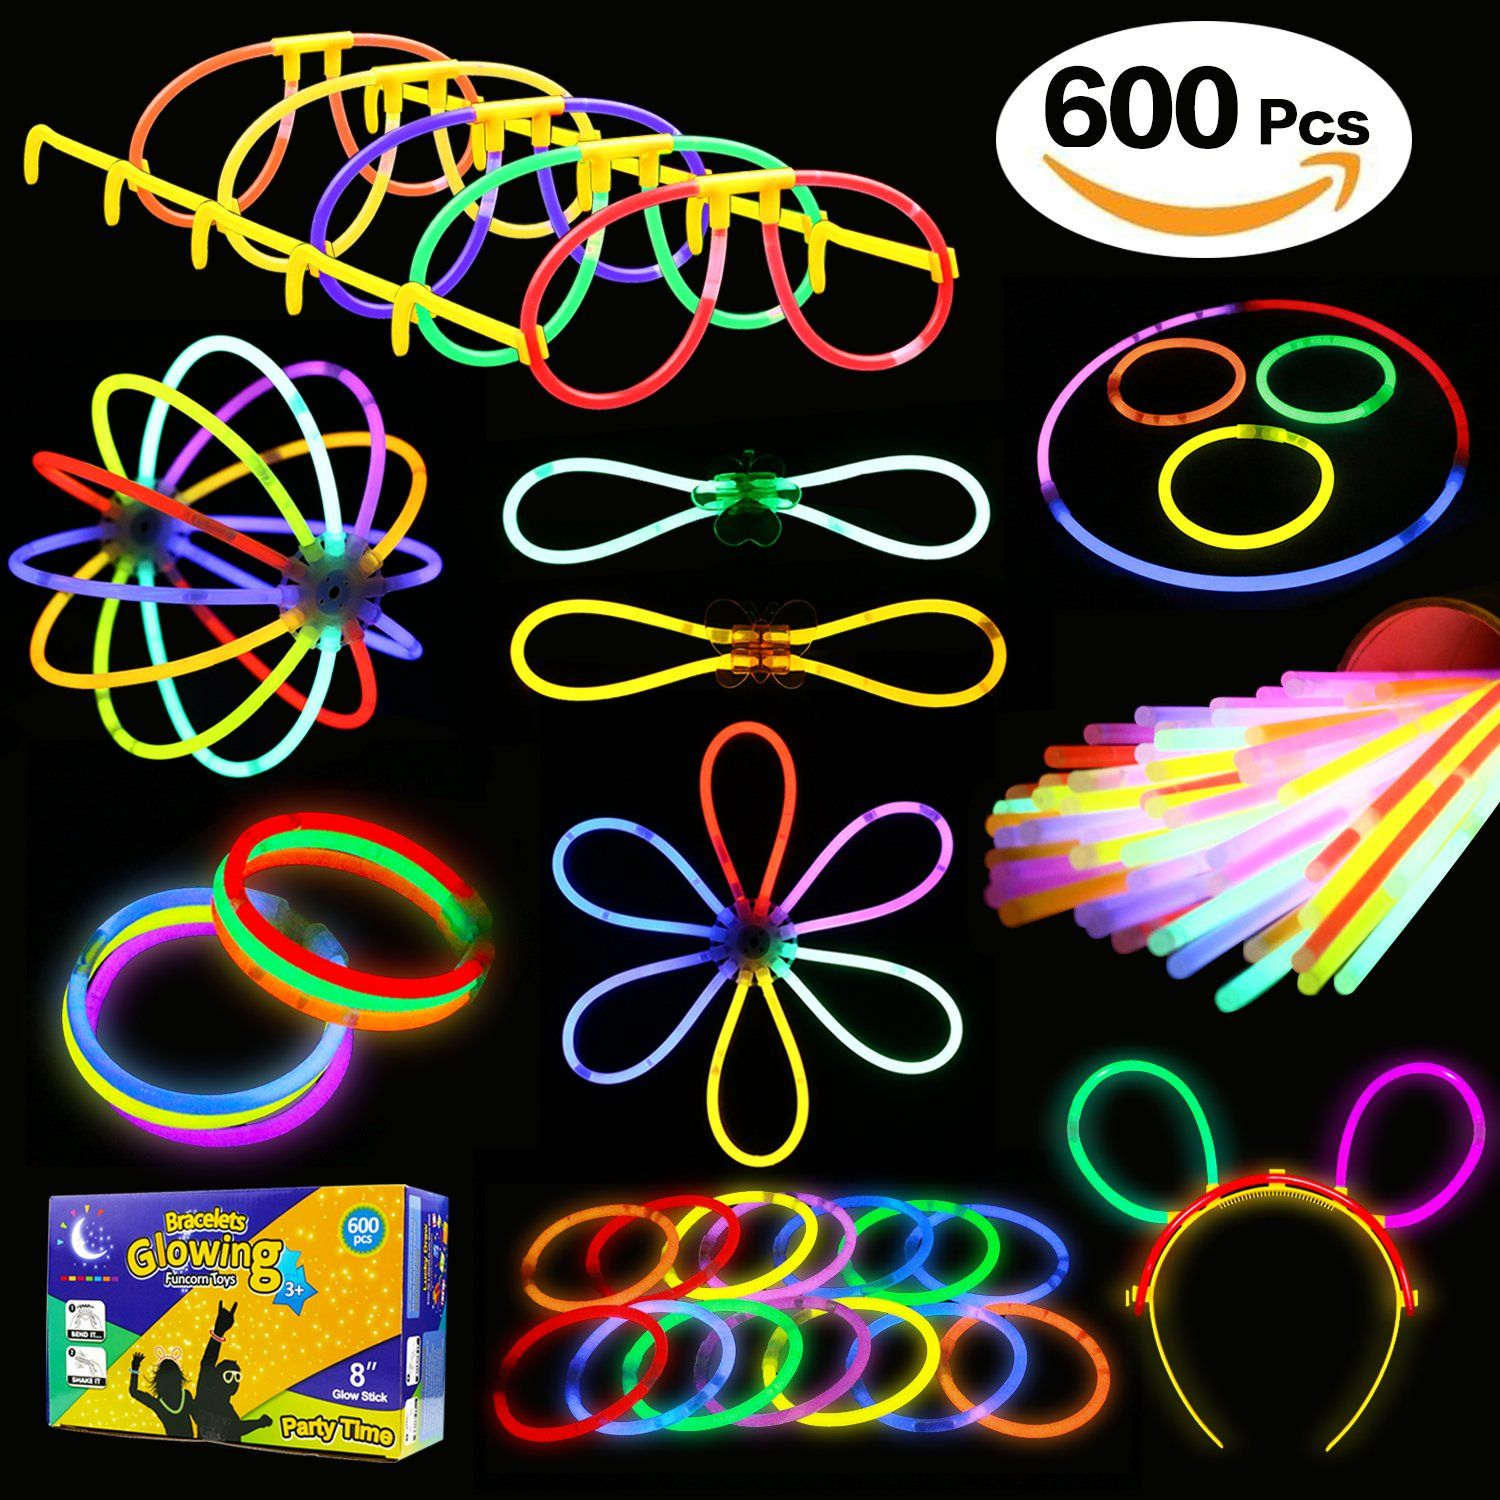 Glowstick 600 Pcs Total 250 Glow Sticks Bulk 7 Colour And Connectors For Bracelets Necklaces Eyegleore Funcorn Toys Light Up In The Dark